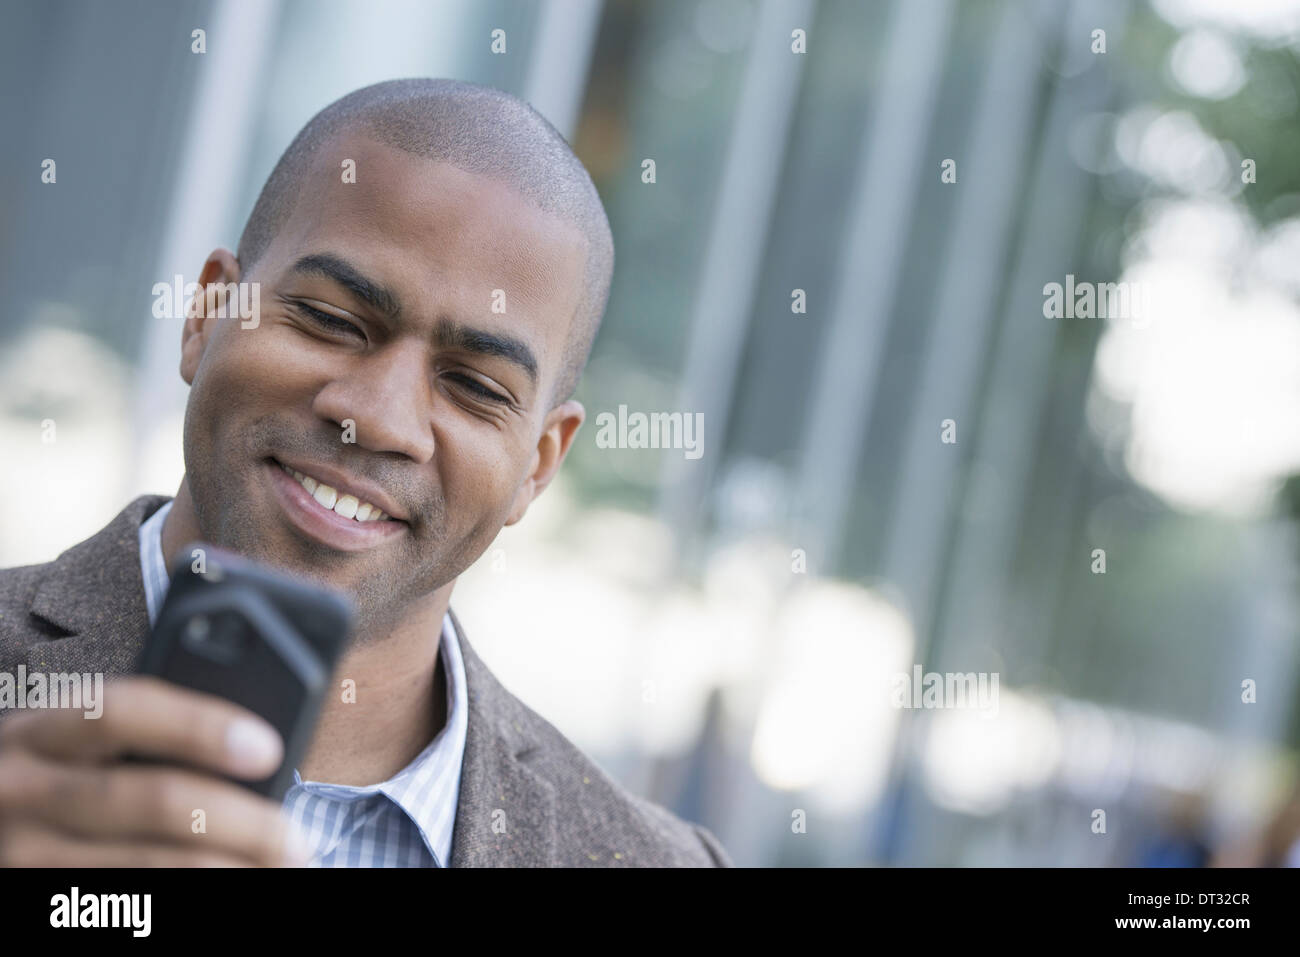 A man looking down at his smart phone - Stock Image